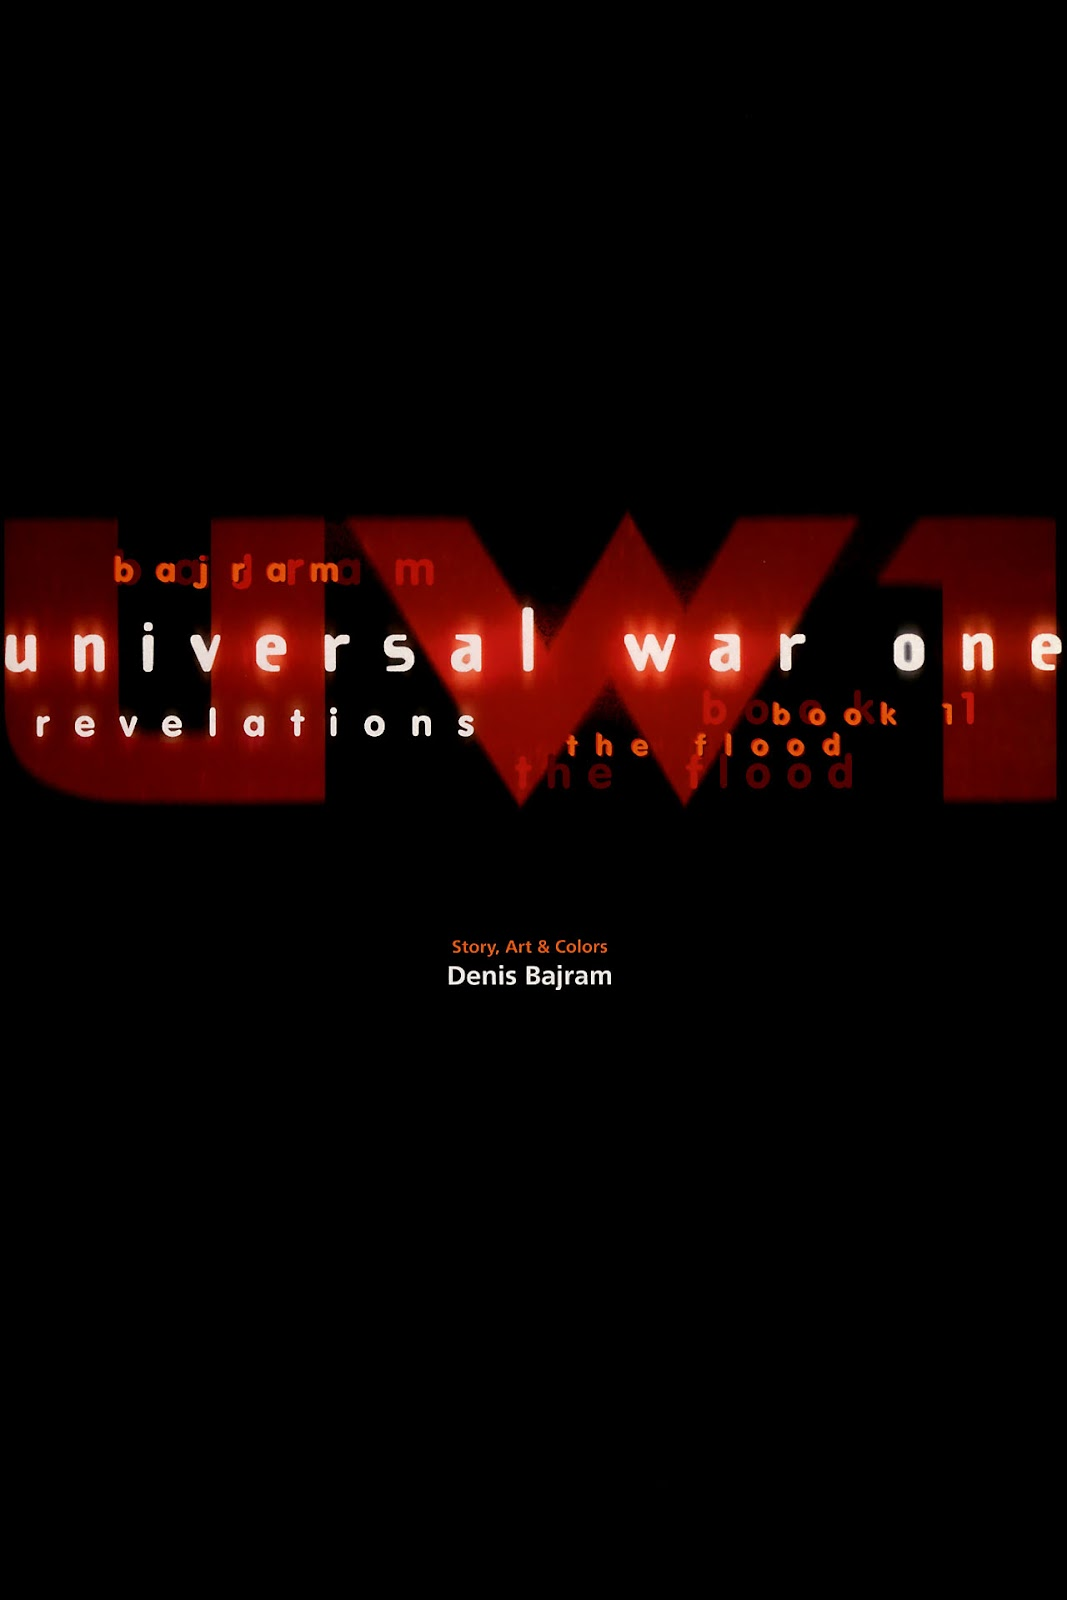 Read online Universal War One: Revelations comic -  Issue #1 - 4